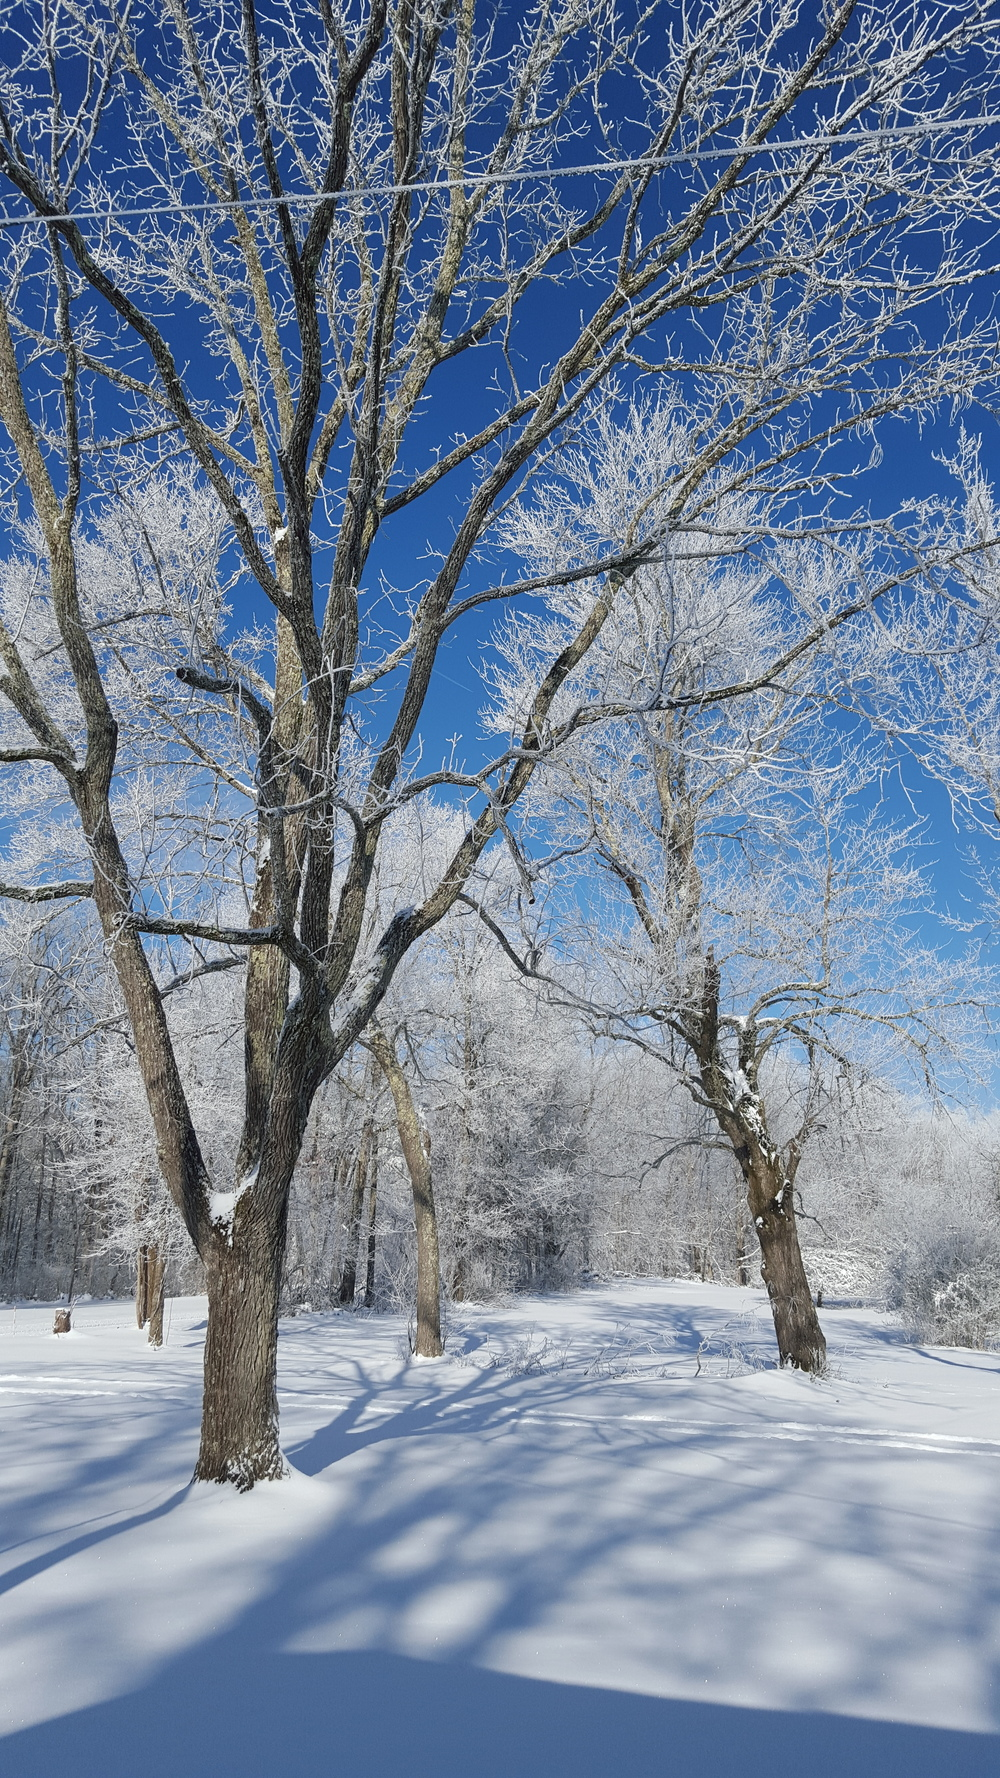 Snowy trees in Scott County TN 15 minutes from Laurel Fork